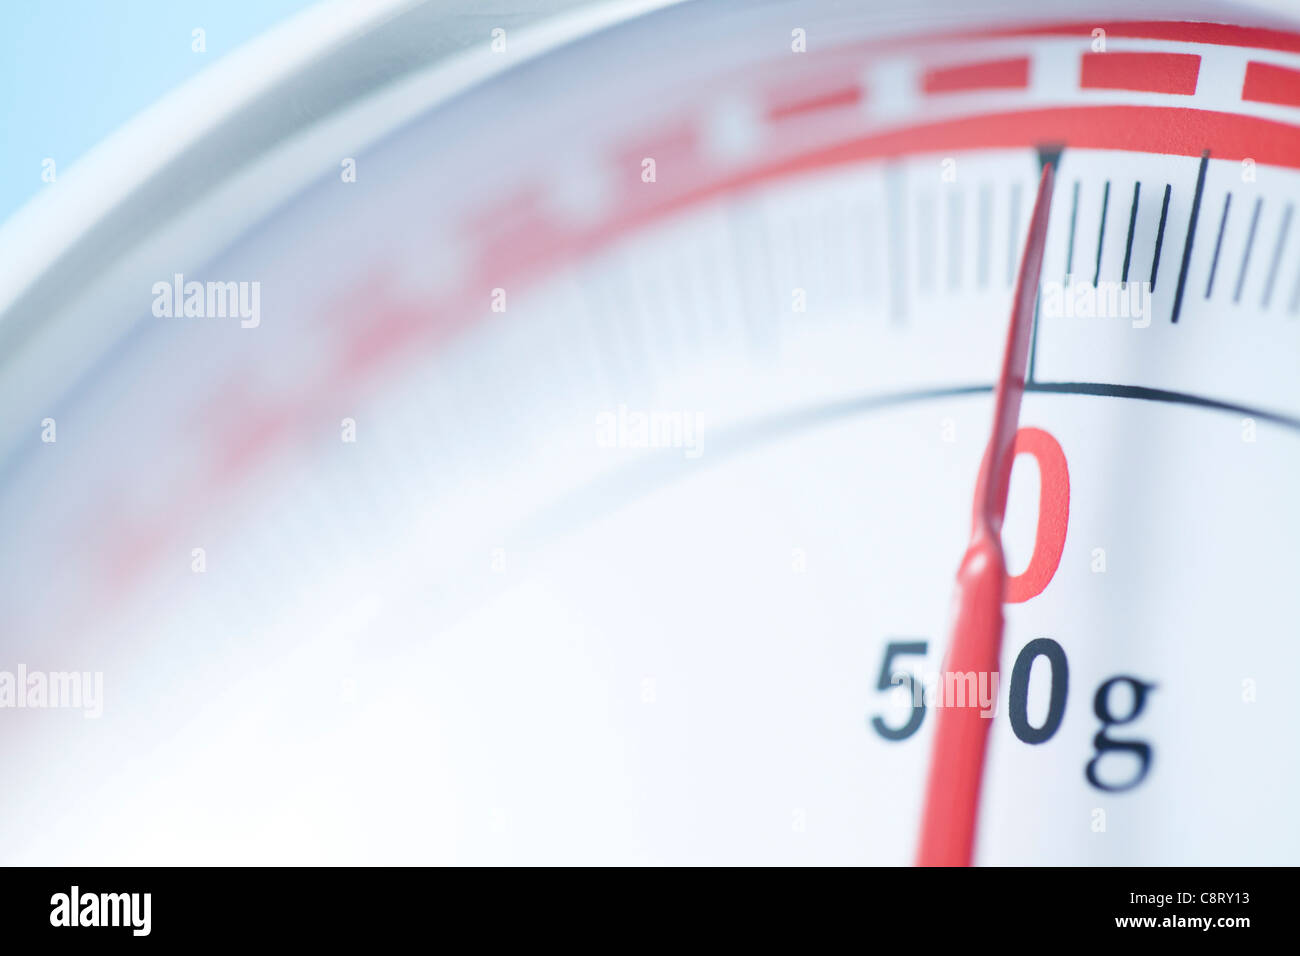 Extreme close-up of weighing scale - Stock Image